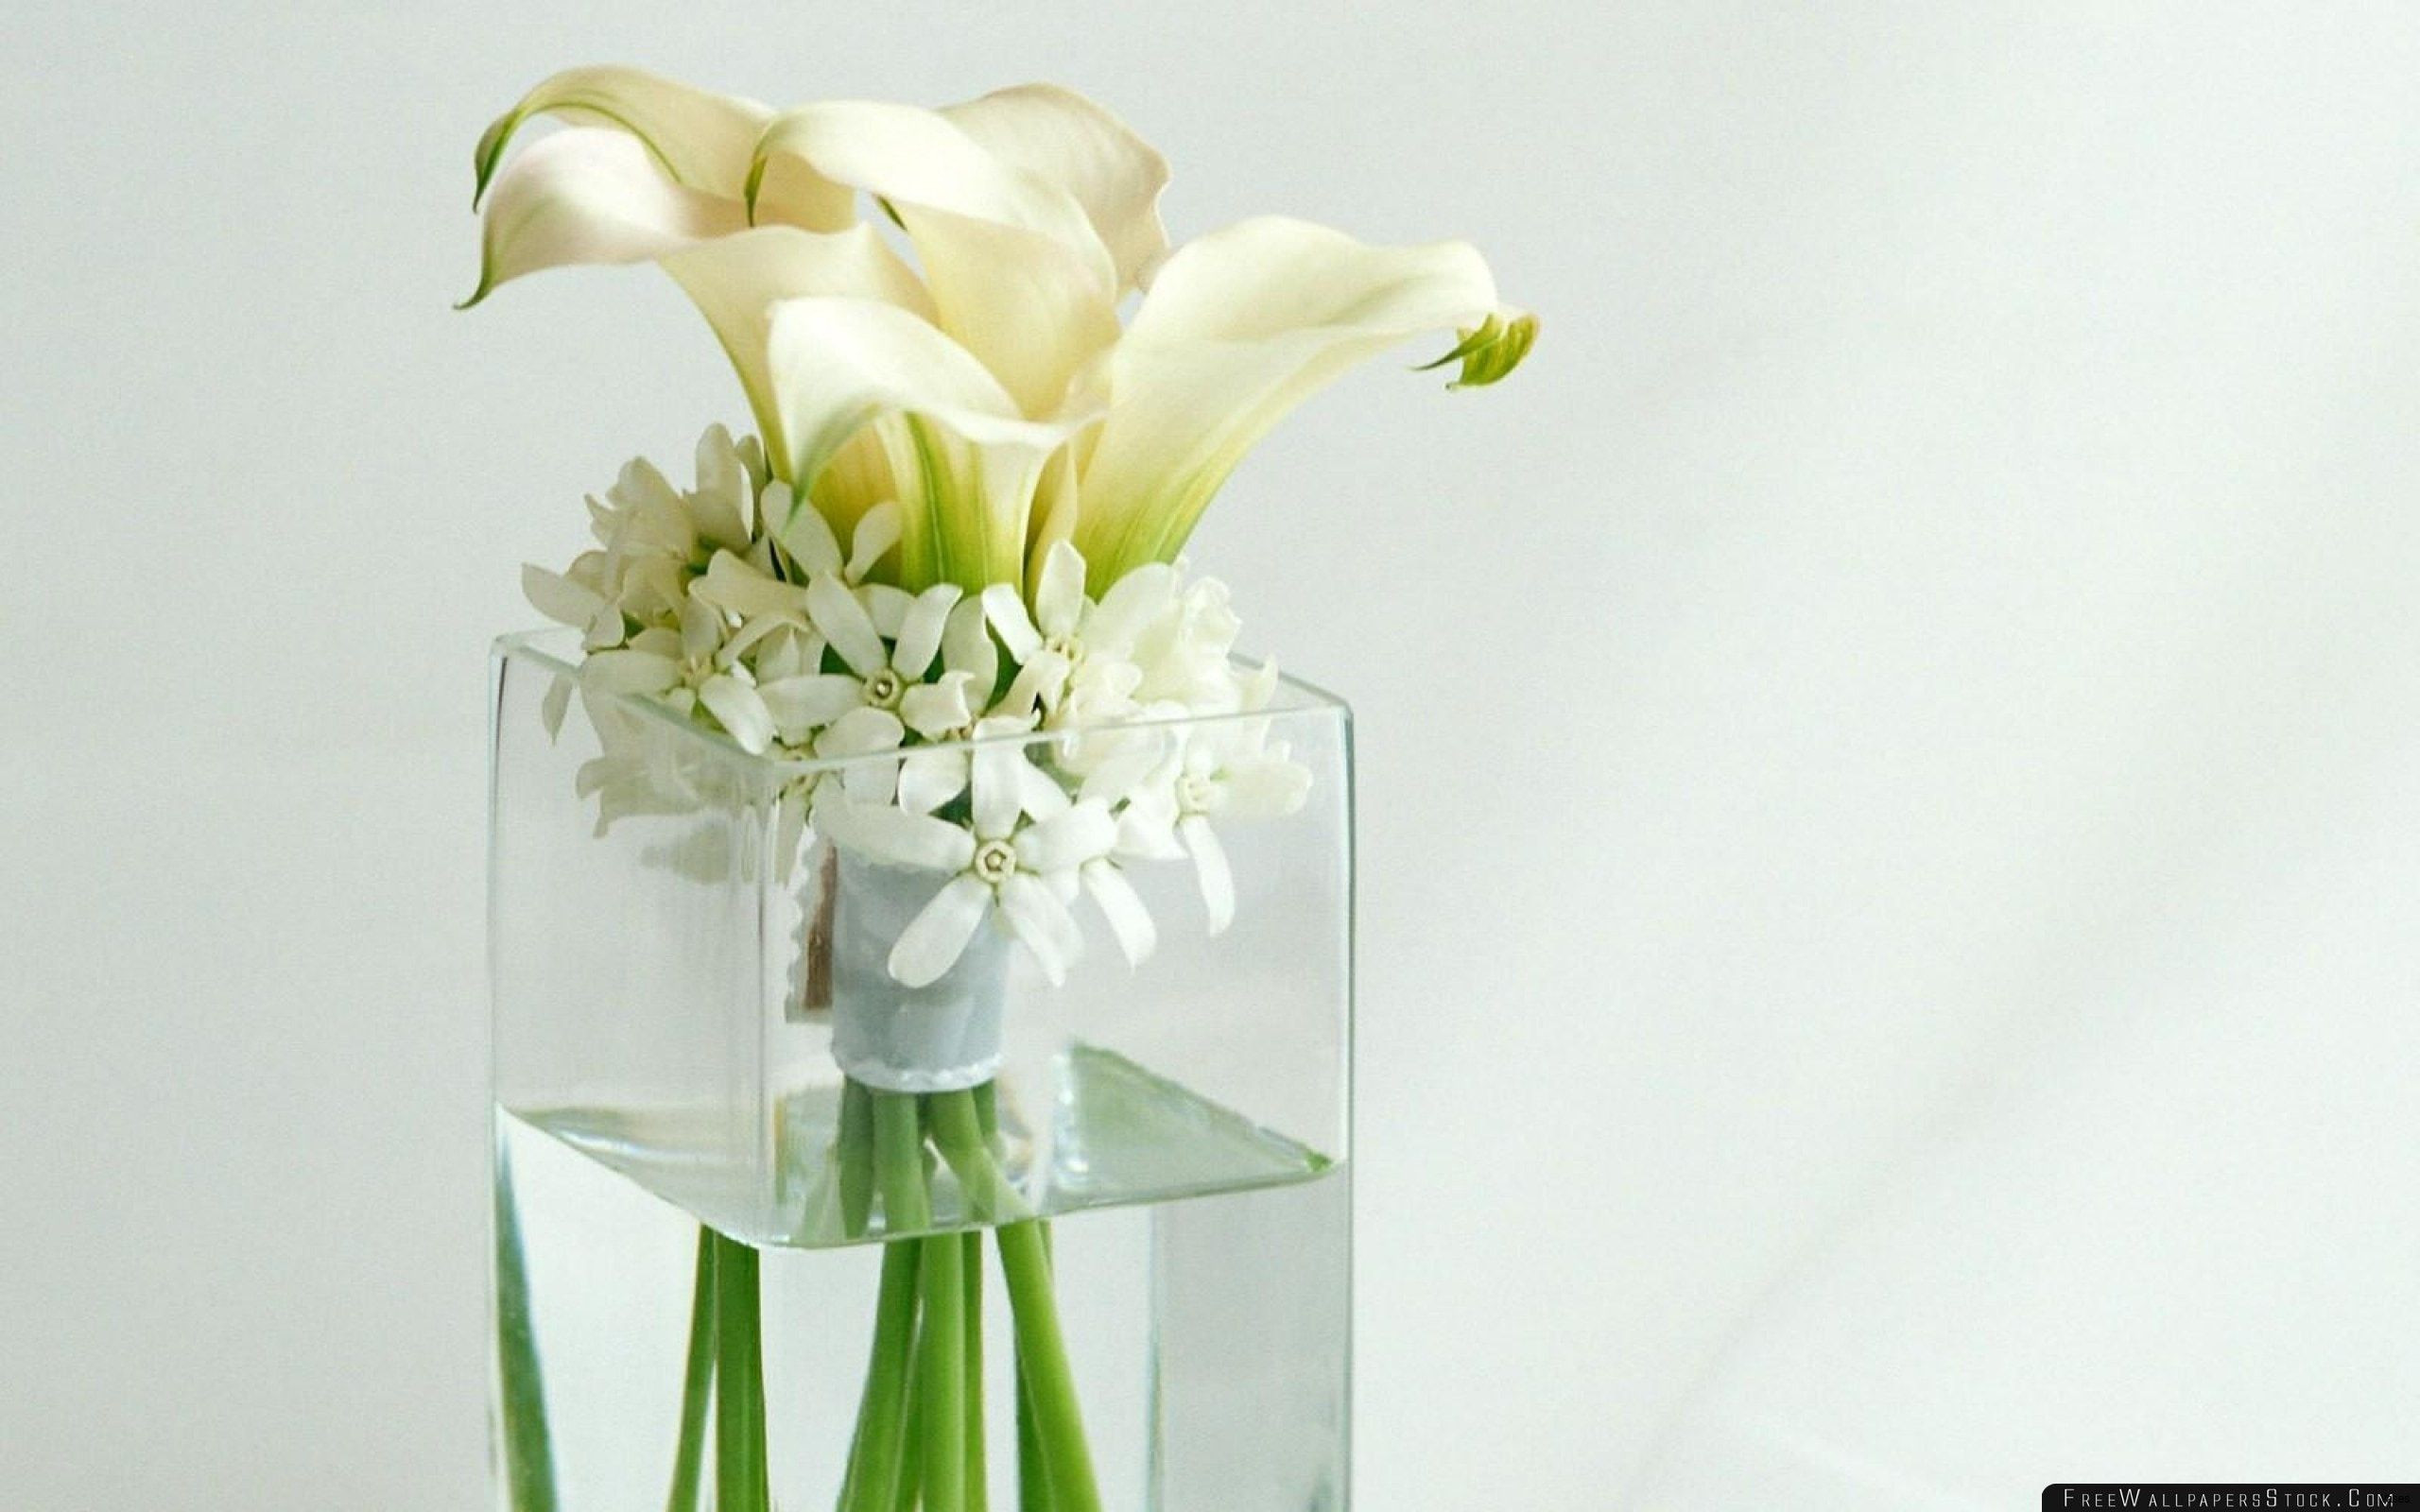 Decorative vase Ideas & 16 Fashionable Small Plastic Flower Vases | Decorative vase ...